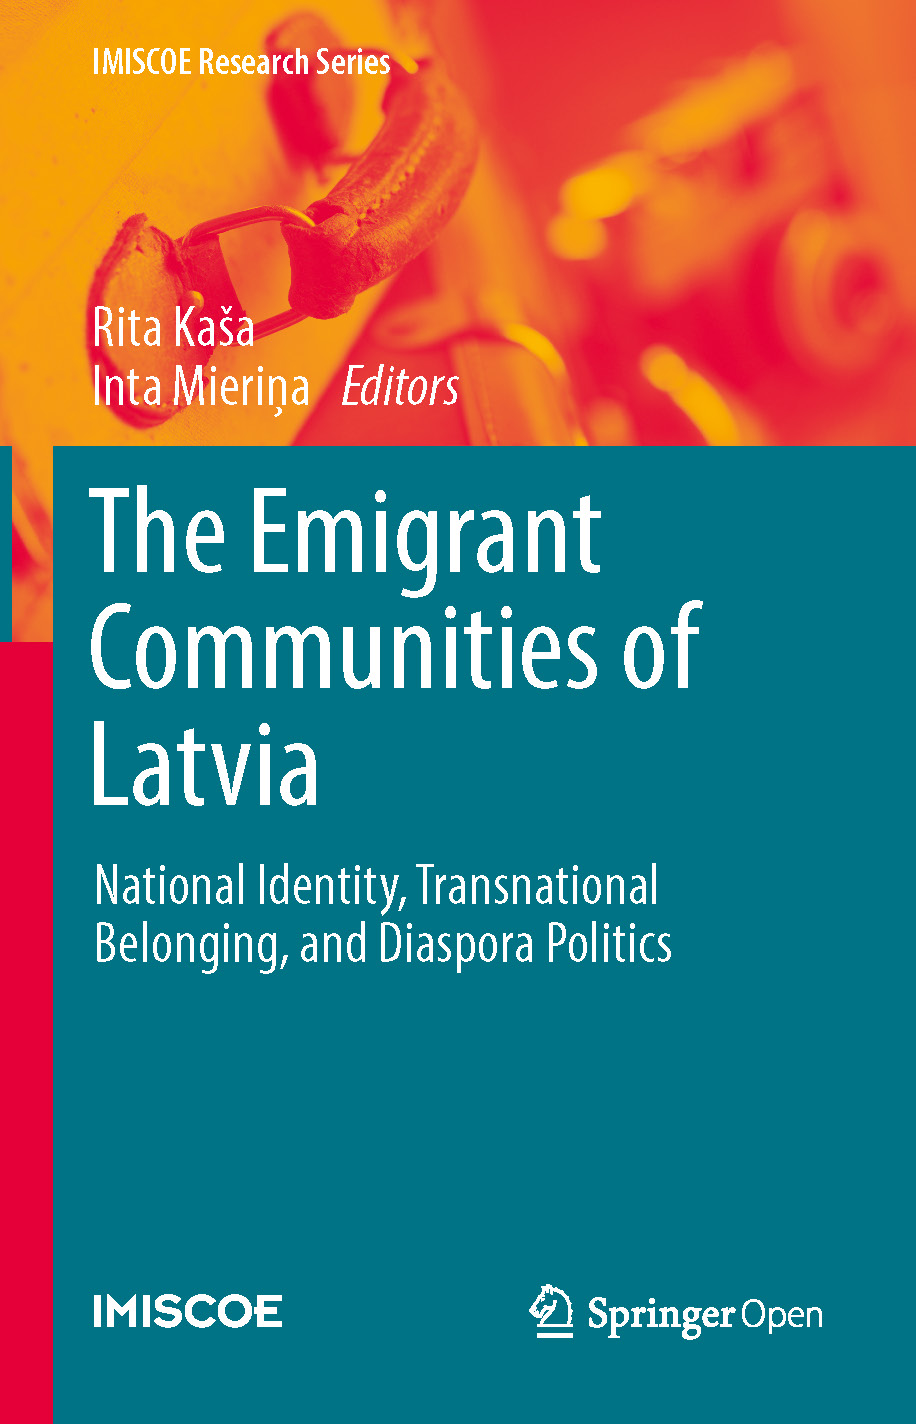 Cover of The Emigrant Communities of Latvia